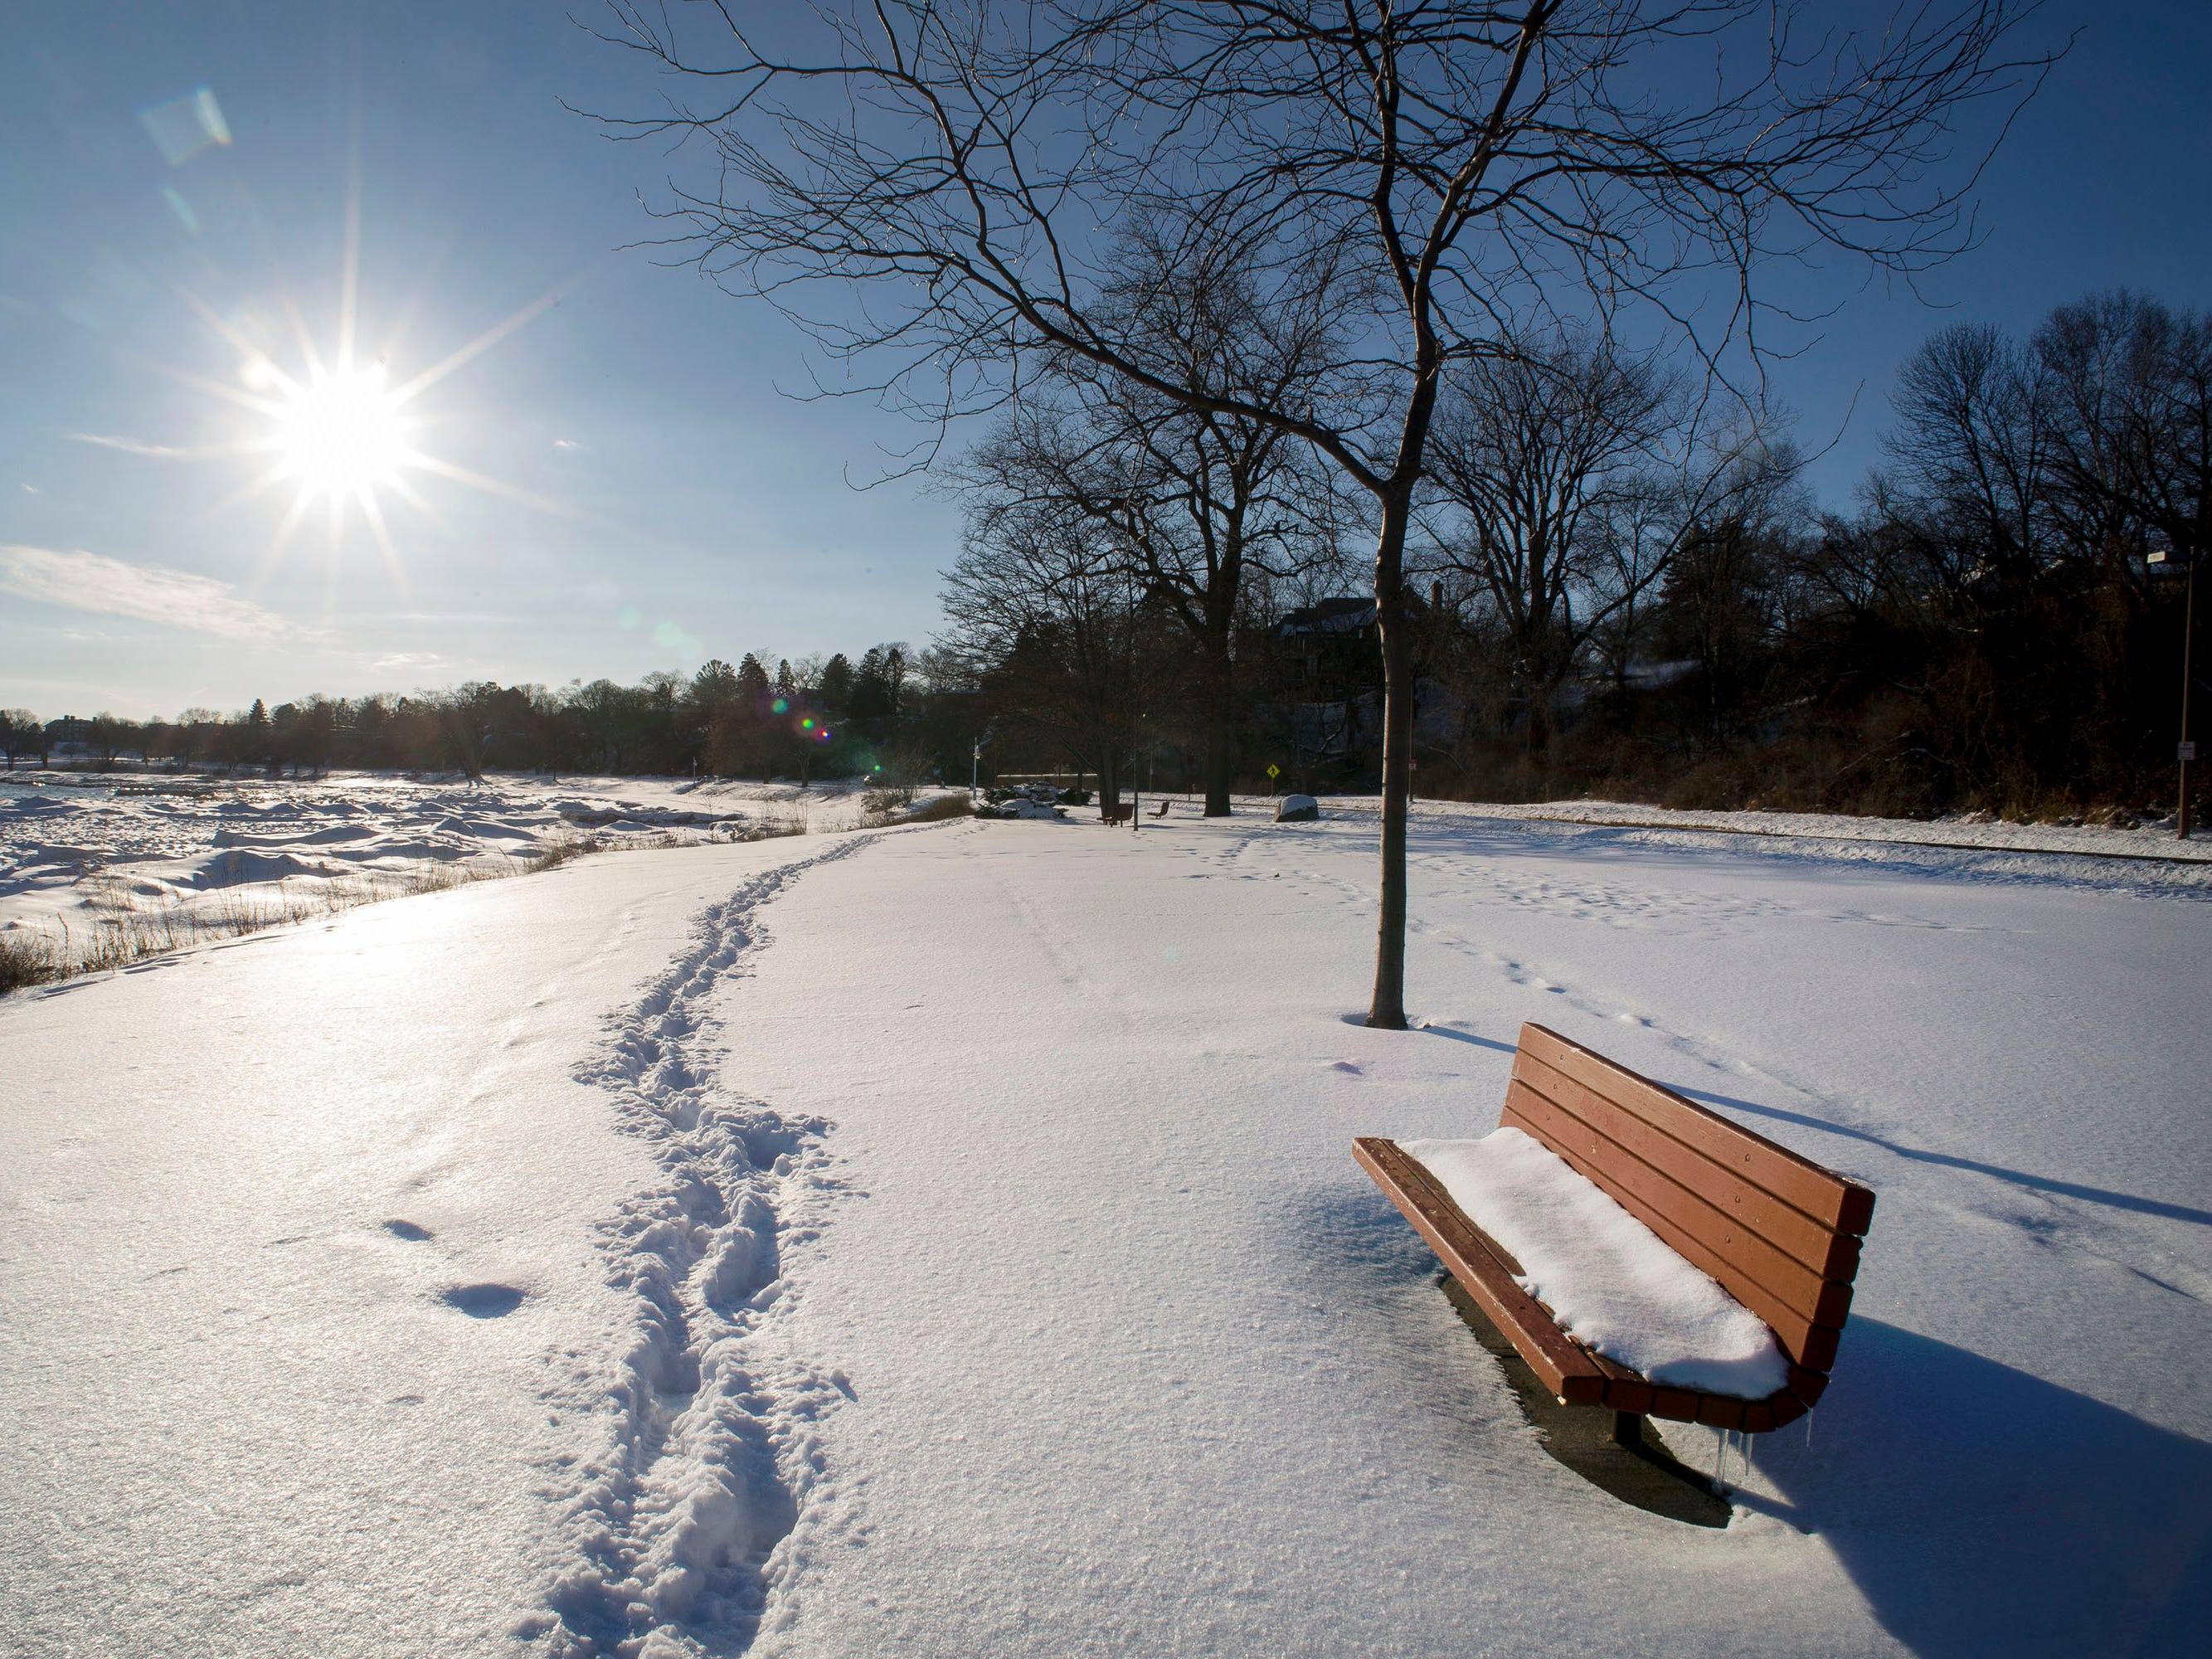 A bright sun contrasts steps in the snow at Deland Park, Friday February 9, 2018 in Sheboygan, Wis.